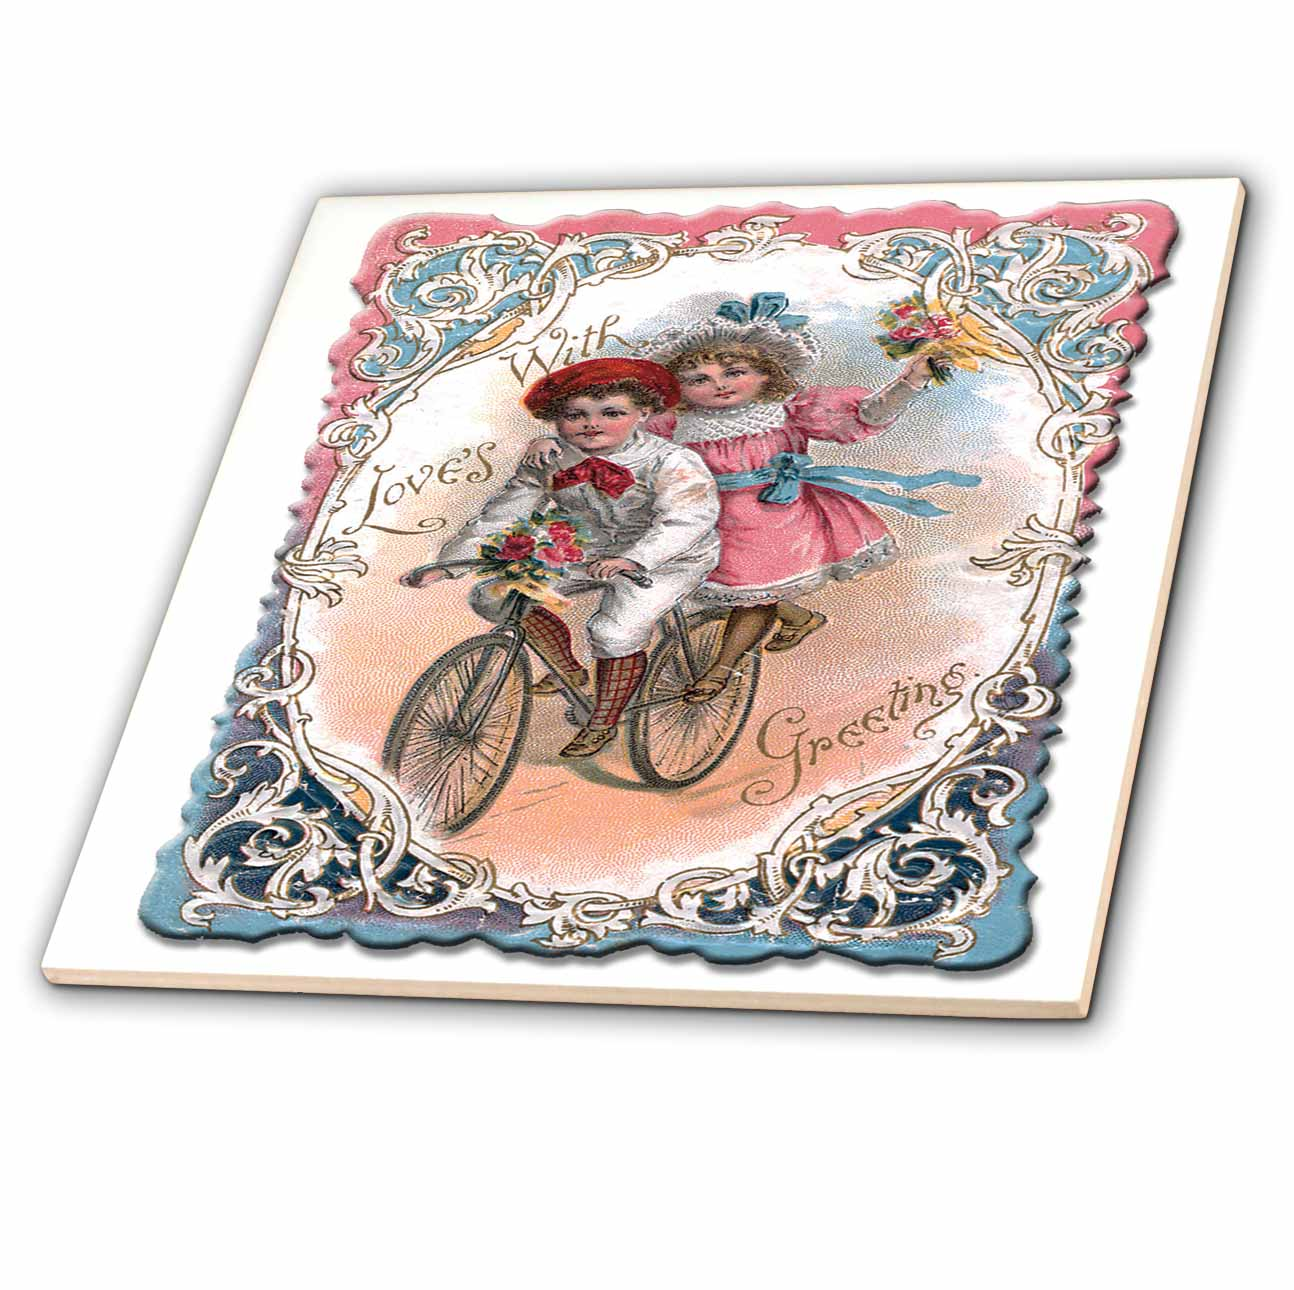 3dRose Cute Boy and Girl on a Tandem Bicycle with Ornate Victorian Frame - Ceramic Tile, 6-inch